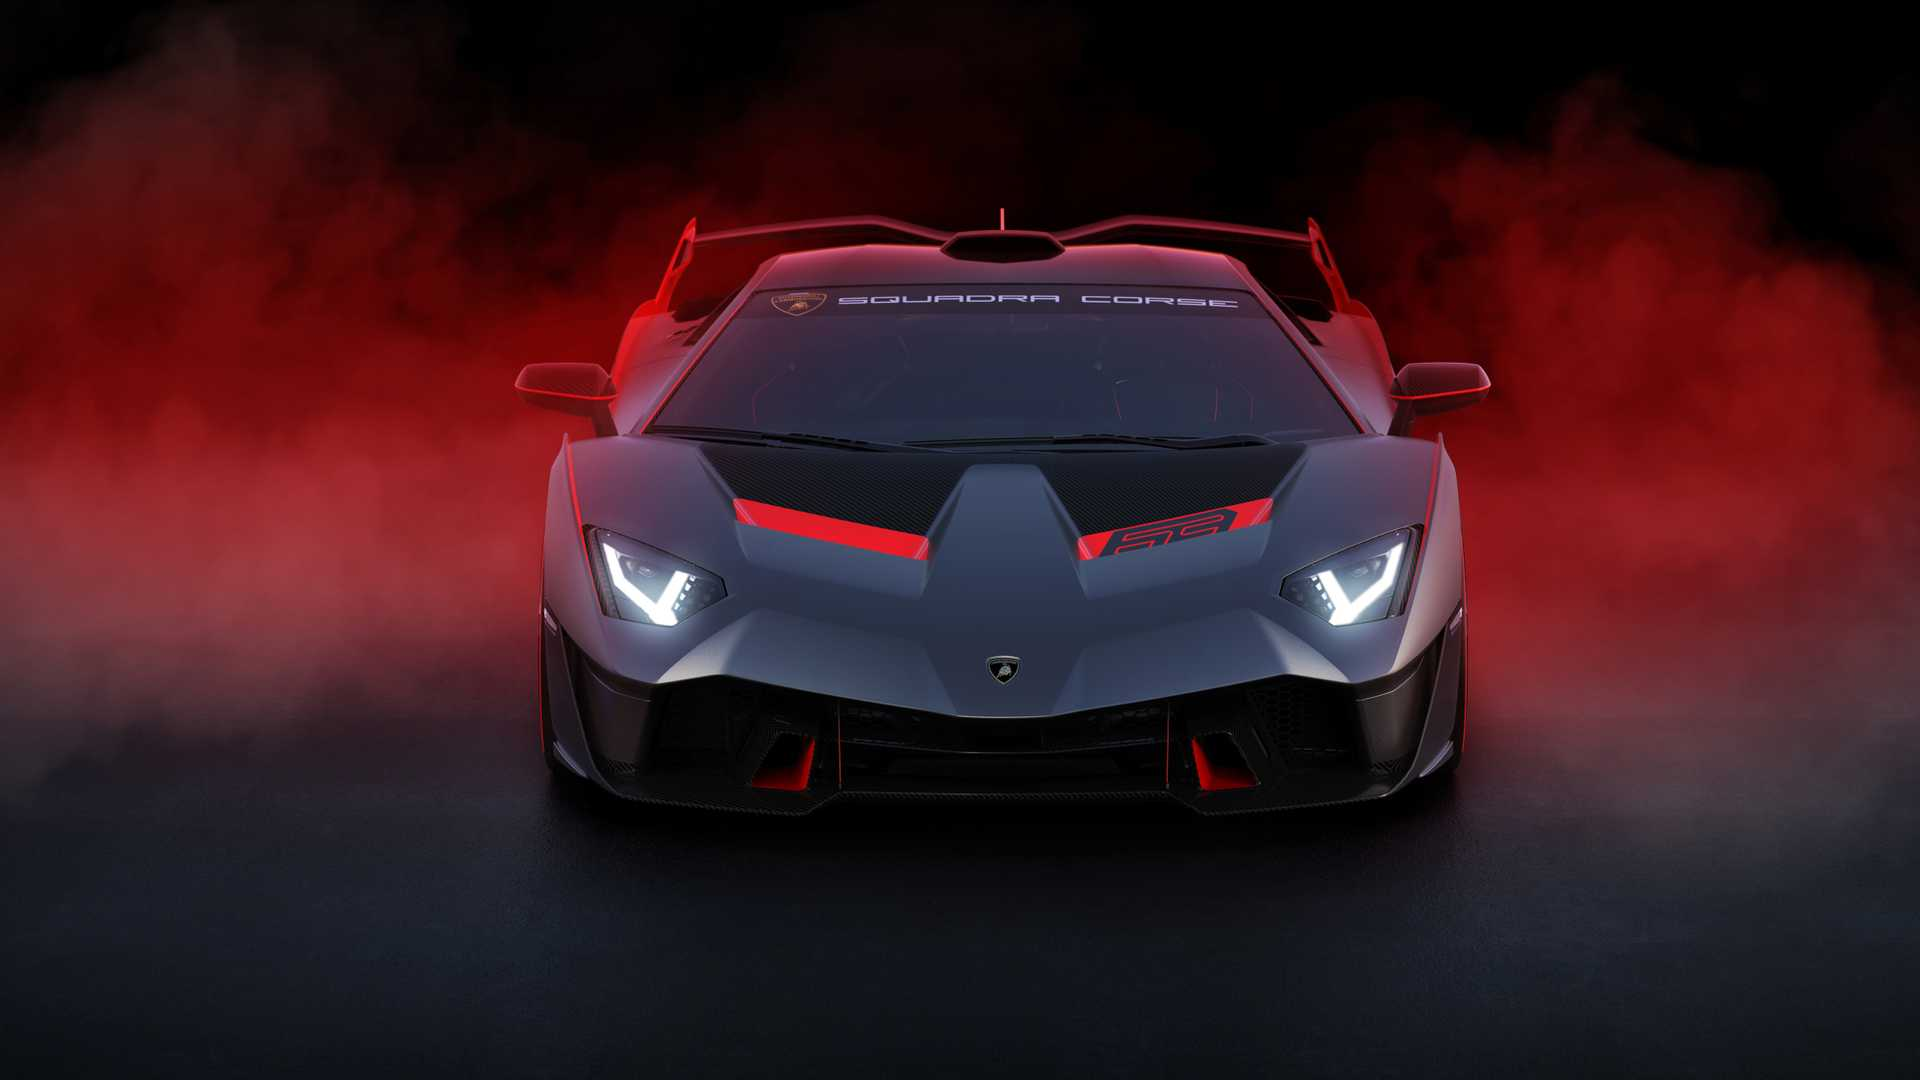 57 All New 2020 Lamborghini Aventador New Model And Performance